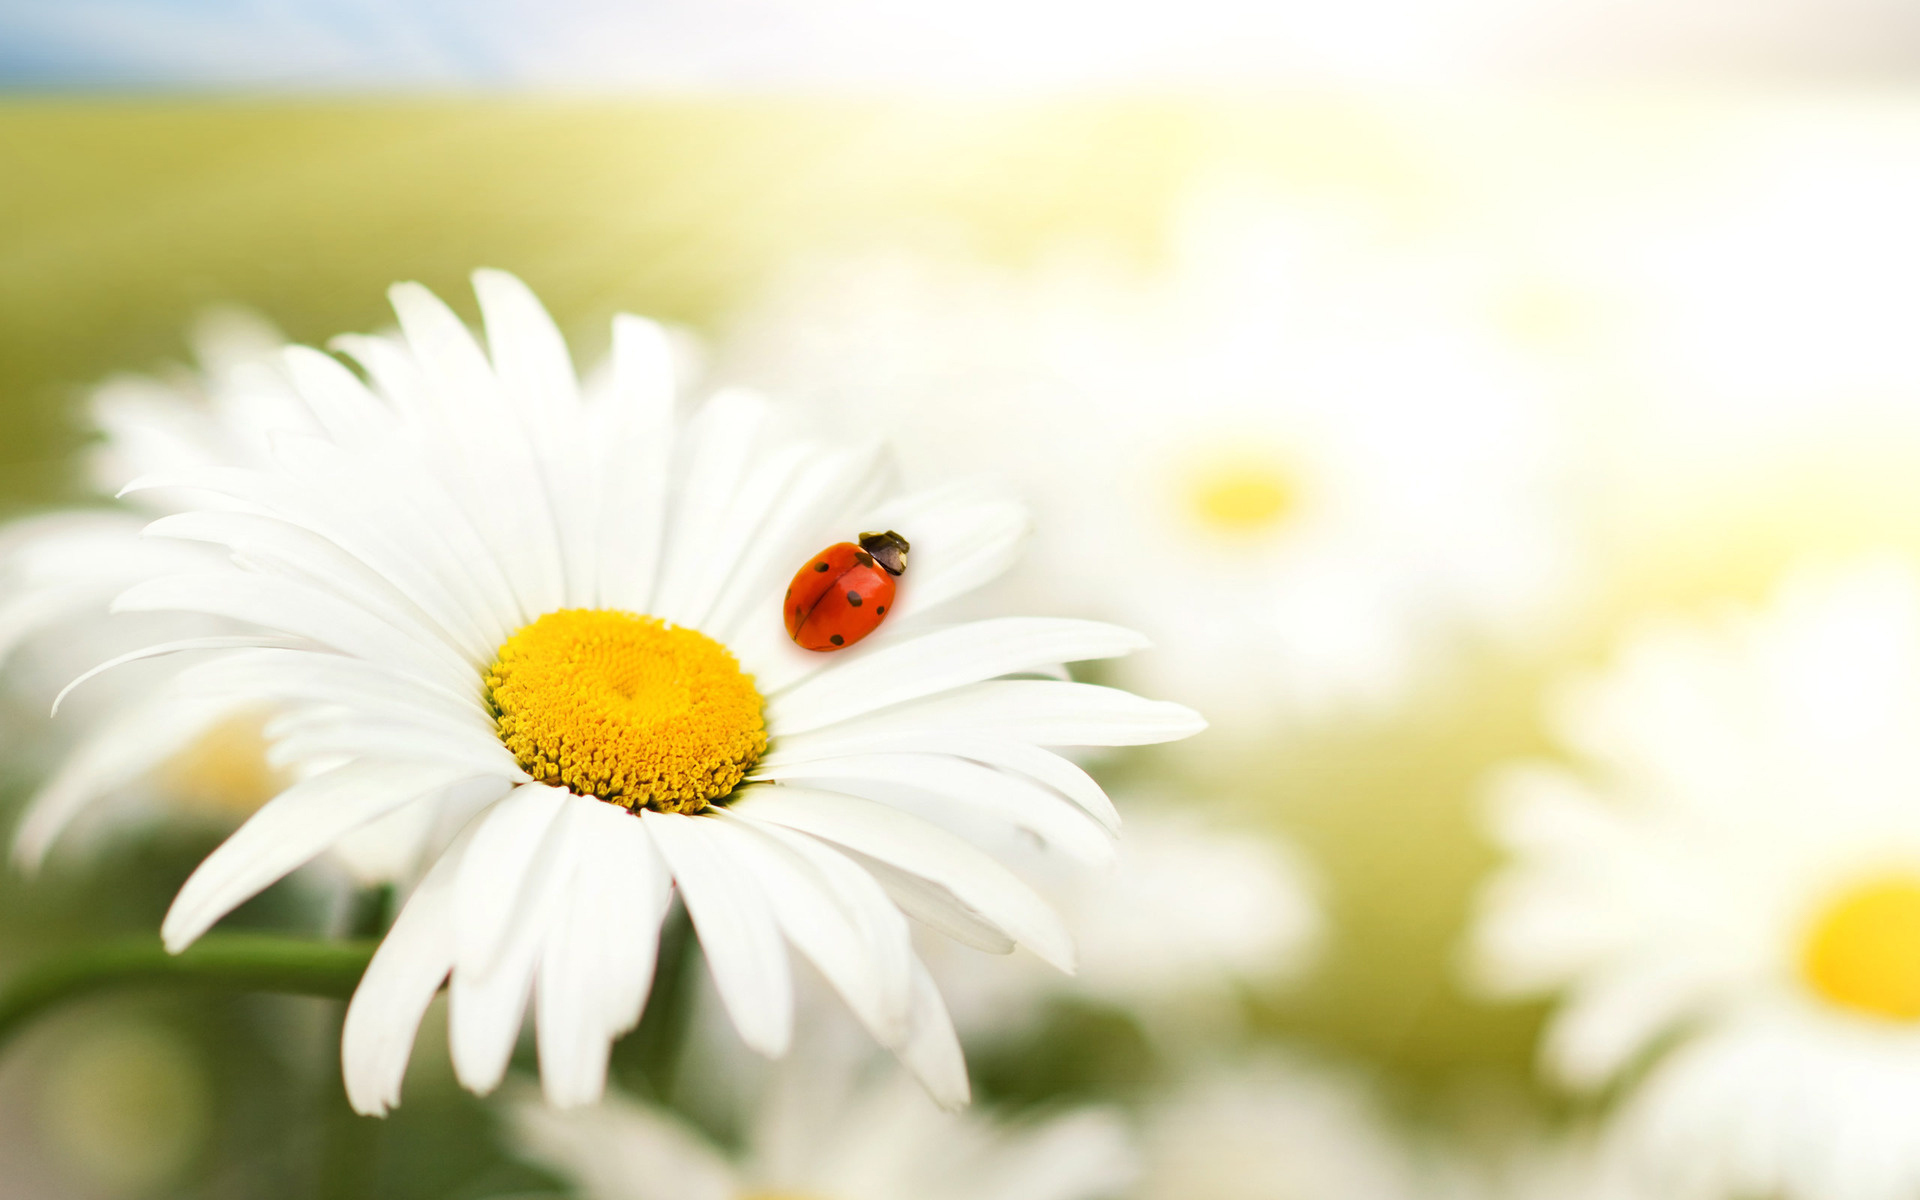 11424 download wallpaper Flowers, Plants, Insects, Camomile, Ladybugs screensavers and pictures for free